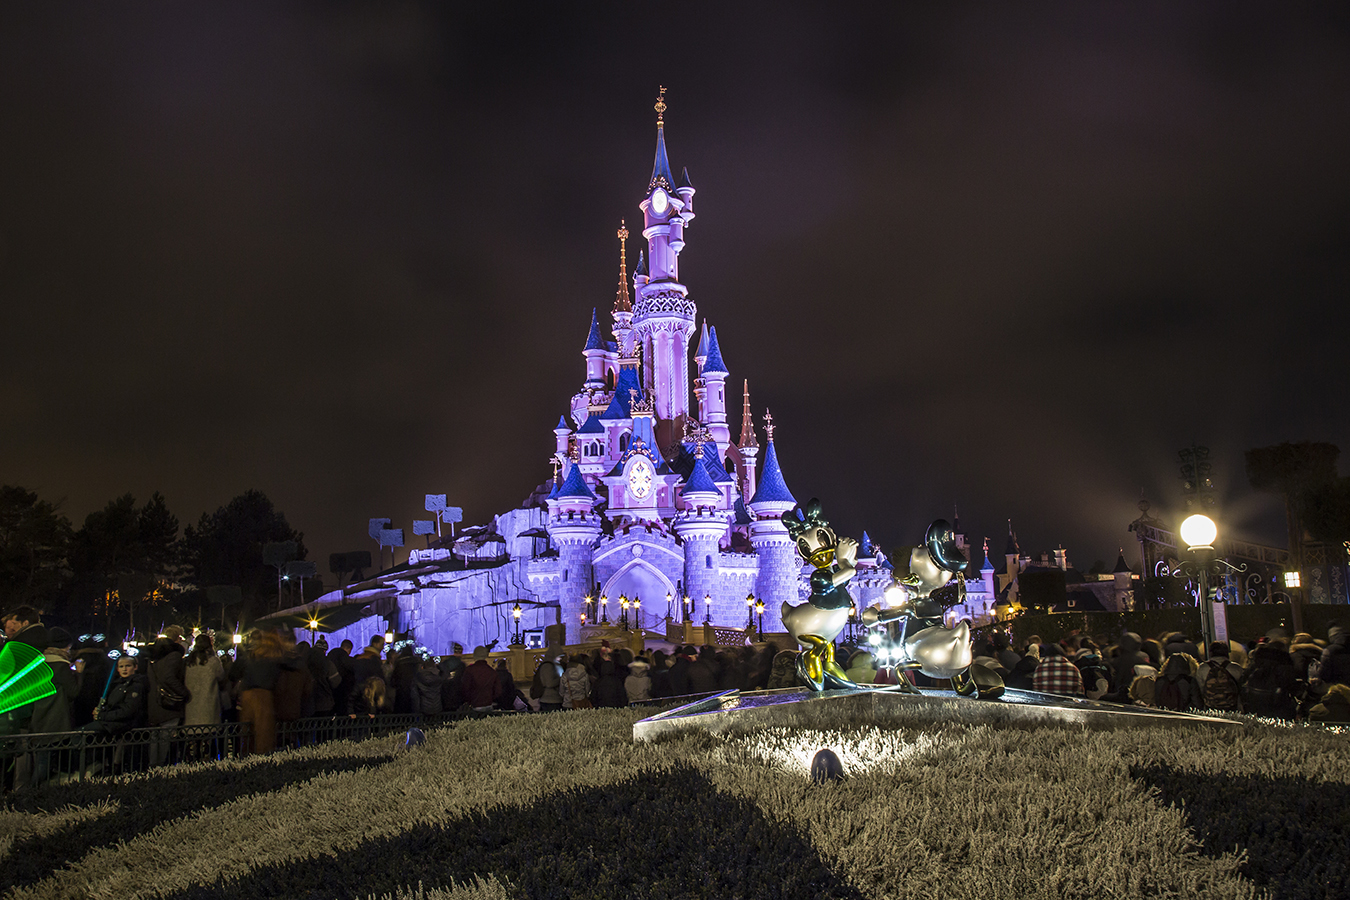 Disney castle - Time Out Disneyland paris and Mastercard Creative Solutions